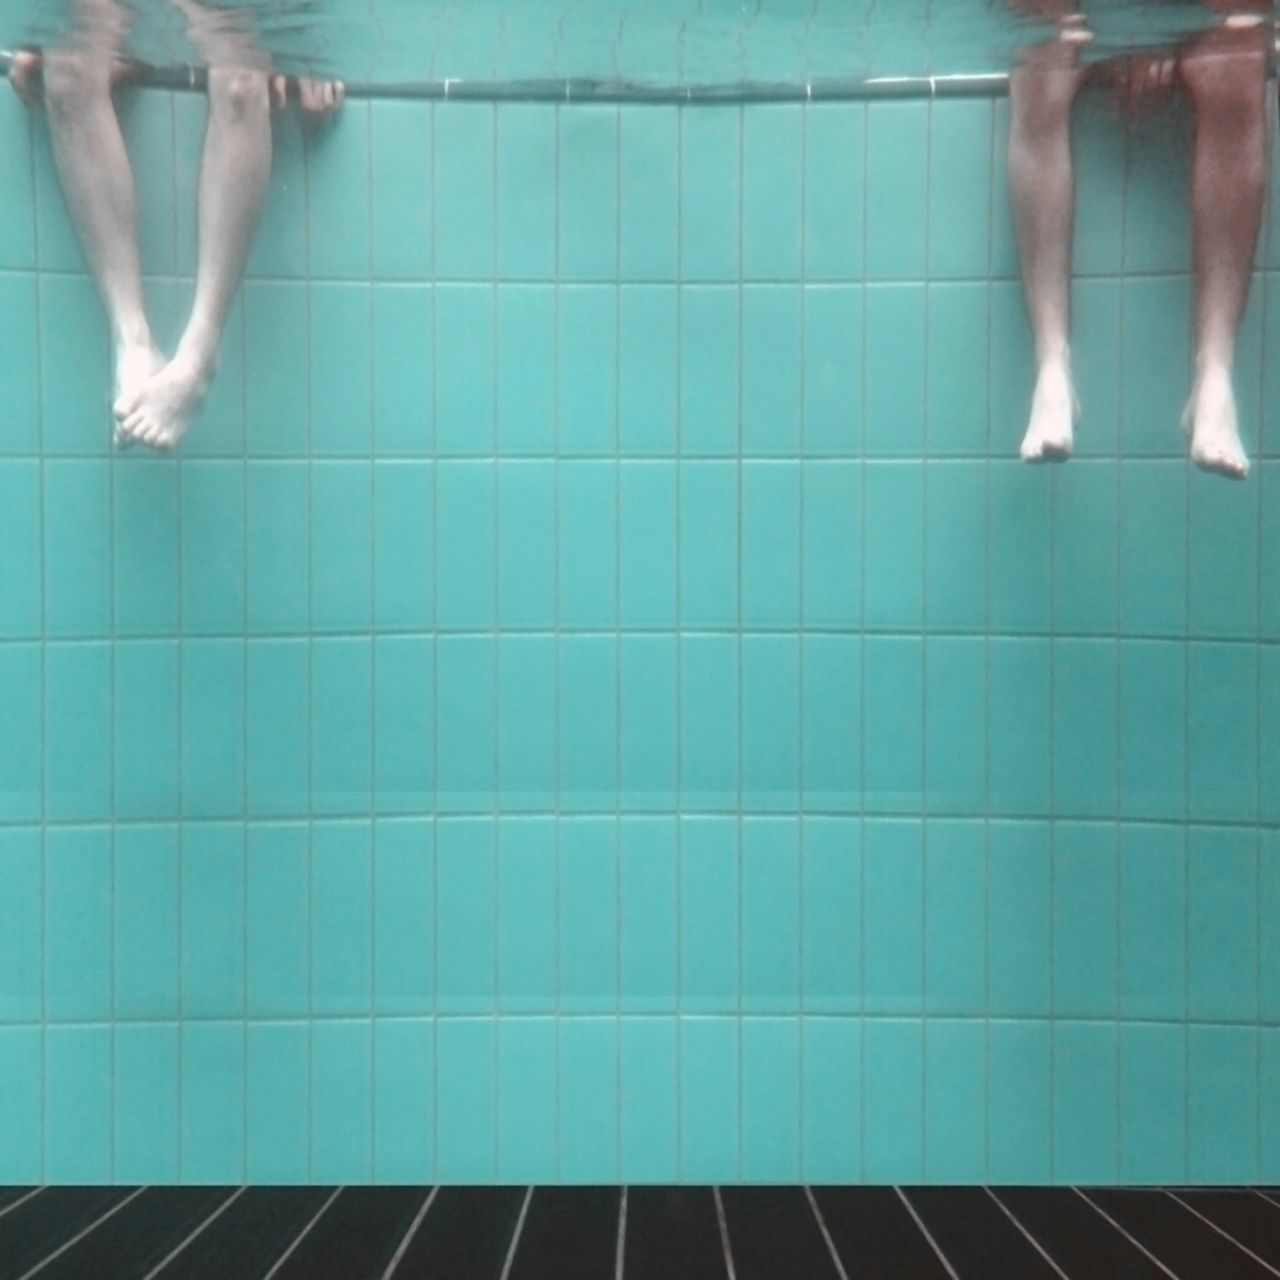 Underwater view of legs dangling in swimming pool